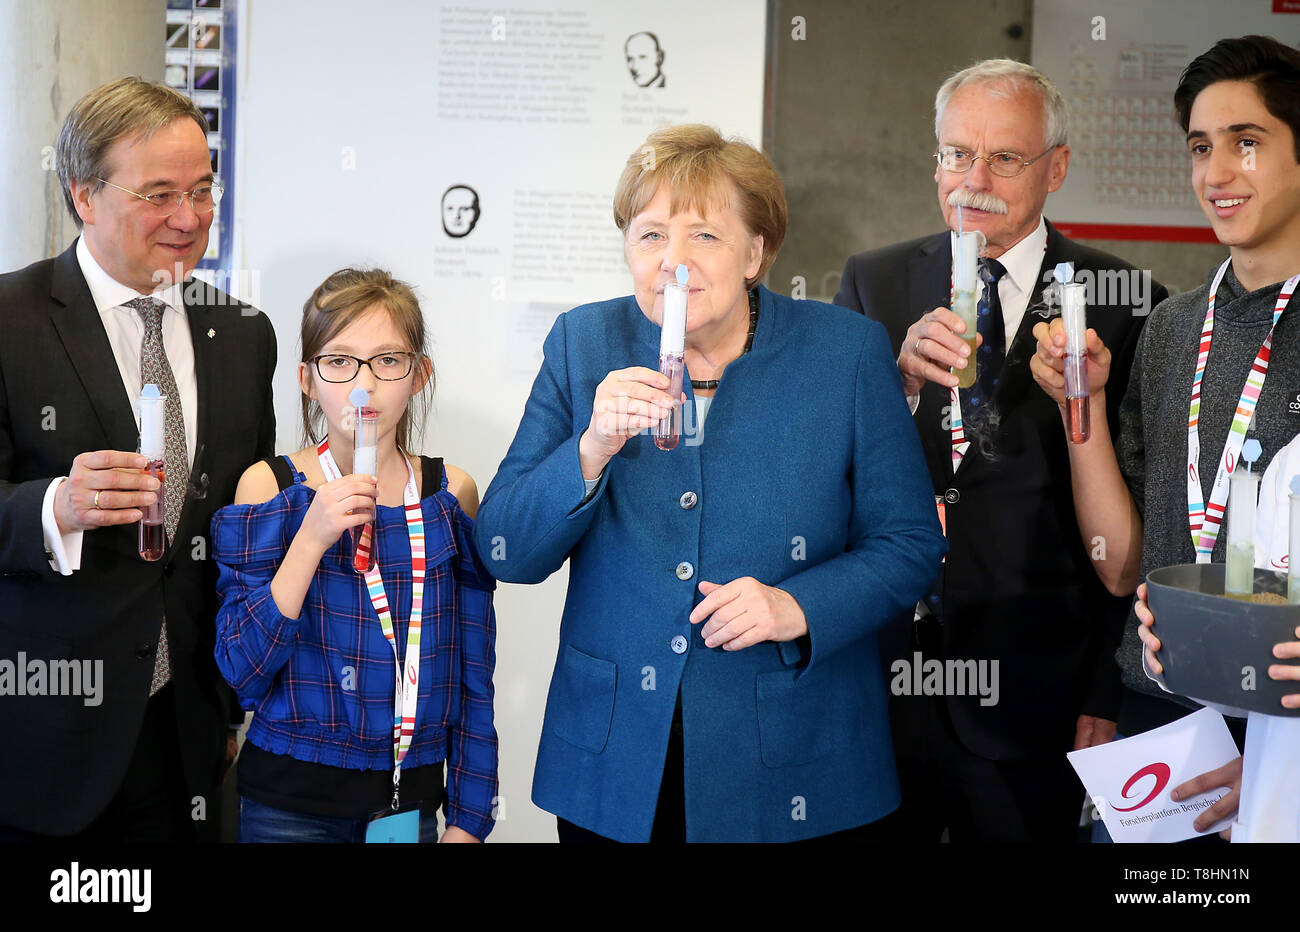 Wuppertal, Germany. 13th May, 2019. Federal Chancellor Angela Merkel (M, CDU), Armin Laschet, Prime Minister of North Rhine-Westphalia (l, CDU), and the founder of the Junior University Ernst-Andreas Ziegler (2nd from right) drink with the students Ellis (2nd from left) and Vito (r) dry ice with syrup from a test tube. The Wuppertal Junior University is a nationwide unique extracurricular educational and research institution for 4 to 20 year olds. Credit: Oliver Berg/dpa/Alamy Live News - Stock Image